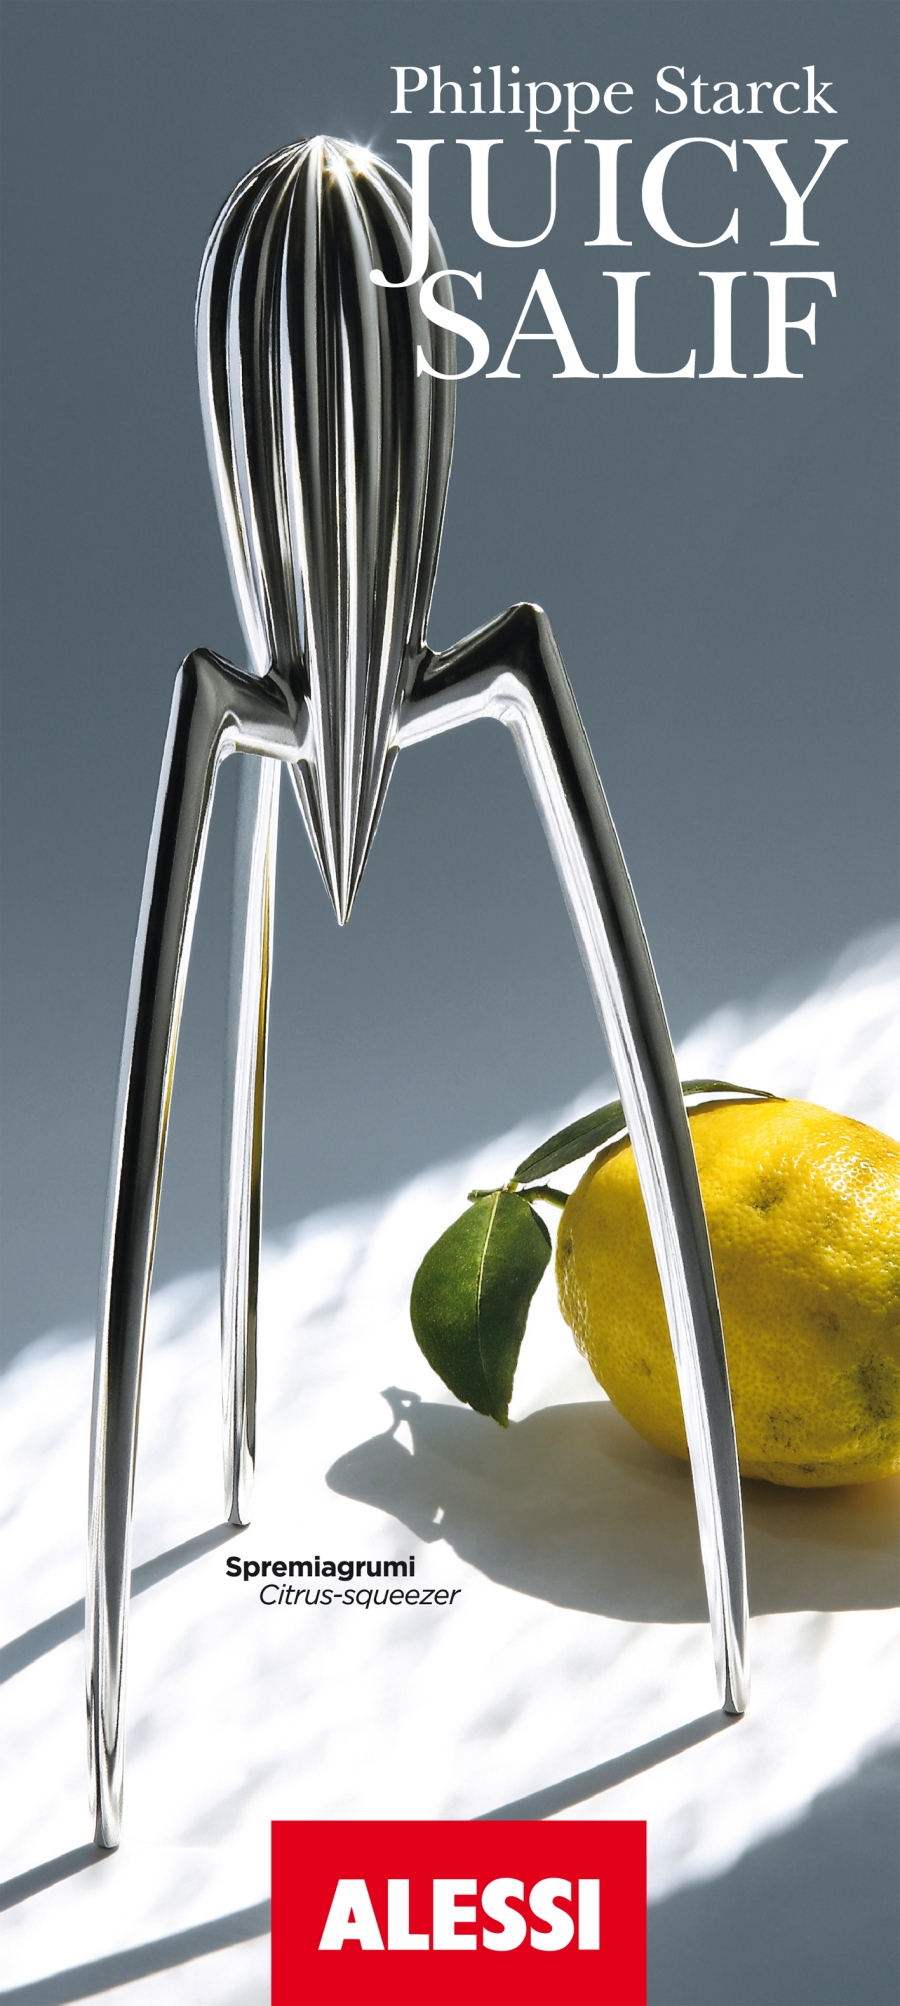 Juicy Salif by Philippe Starck. Credit Alessi